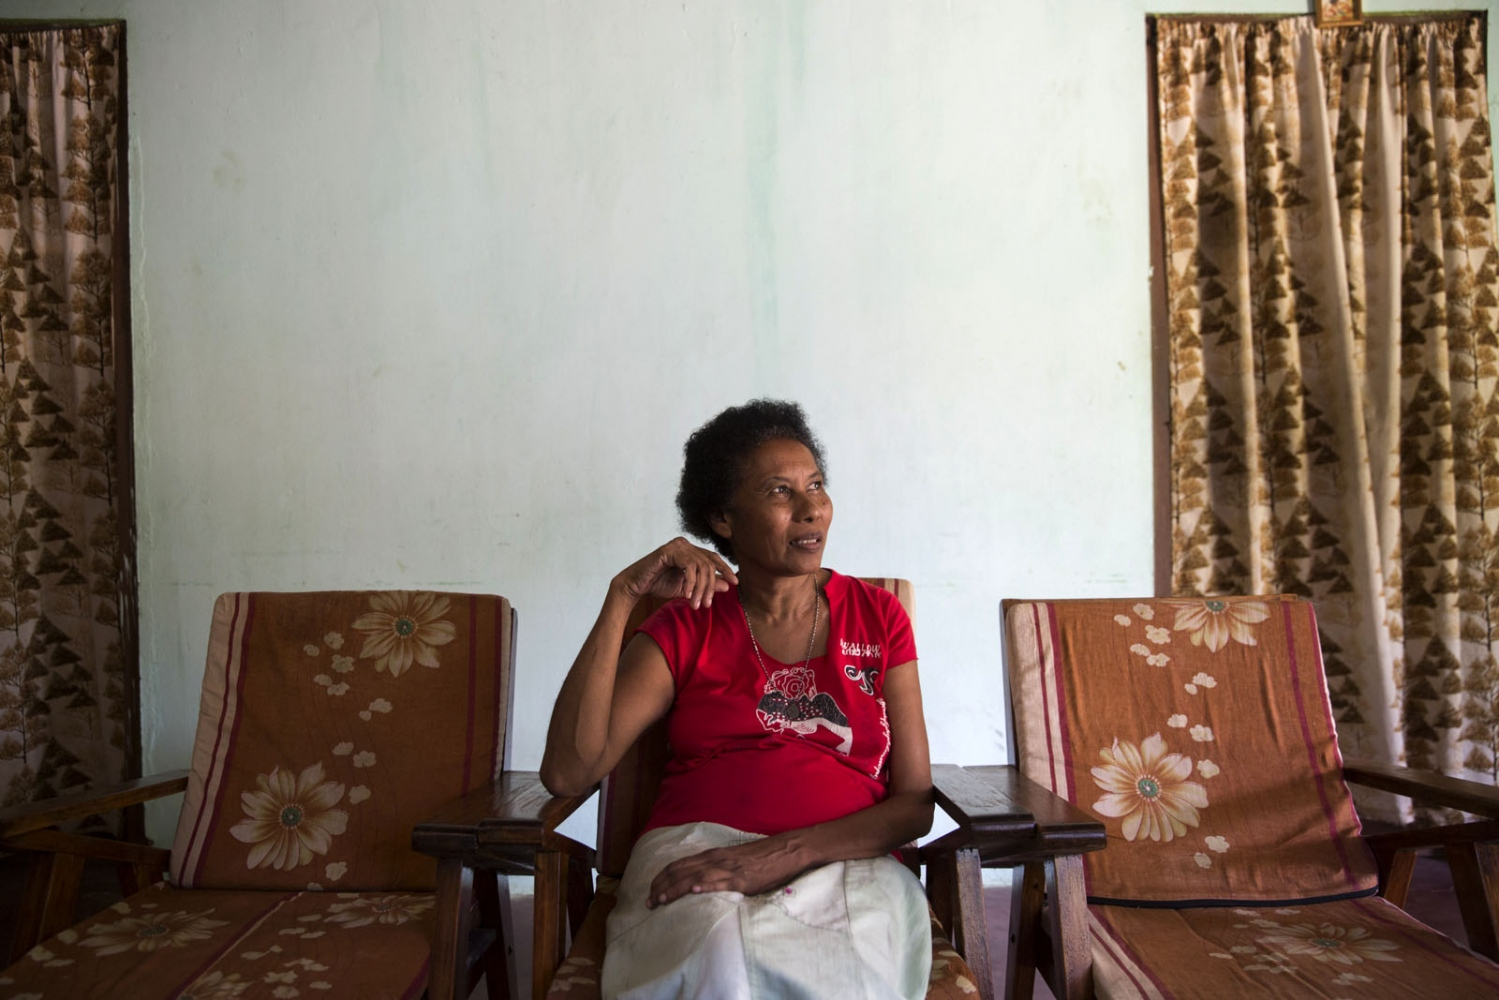 Rita Fernando, 65, daughter of an Afro-Sri Lankan mother and a Sinhalese father sits in her home in Siriambadiya village. Siriambadiya, Sri Lanka - September 2017